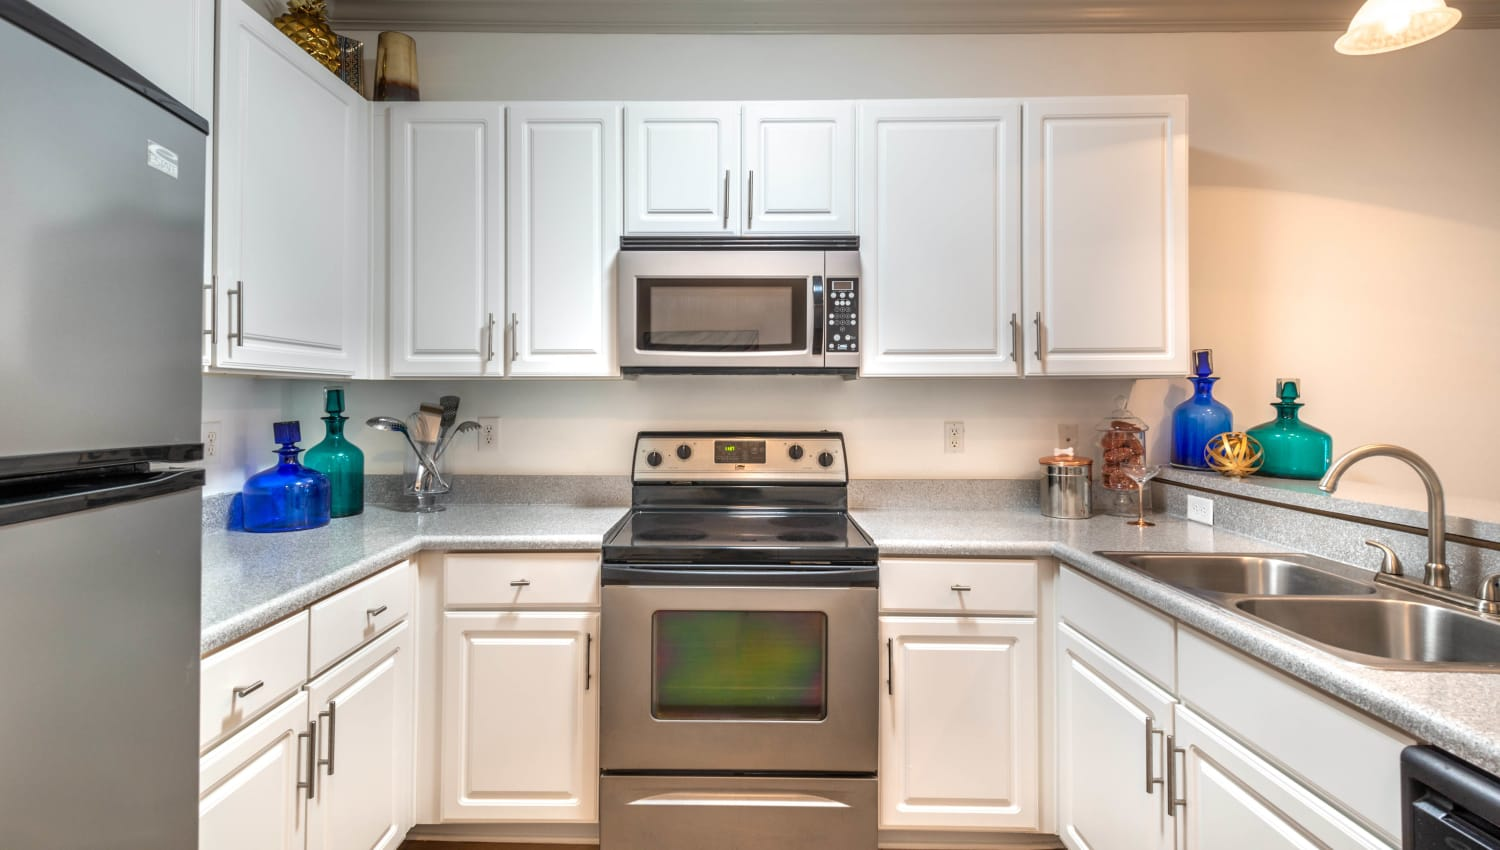 Model apartment's spacious kitchen with ample cupboard space for storage at Olympus Carrington in Pooler, Georgia